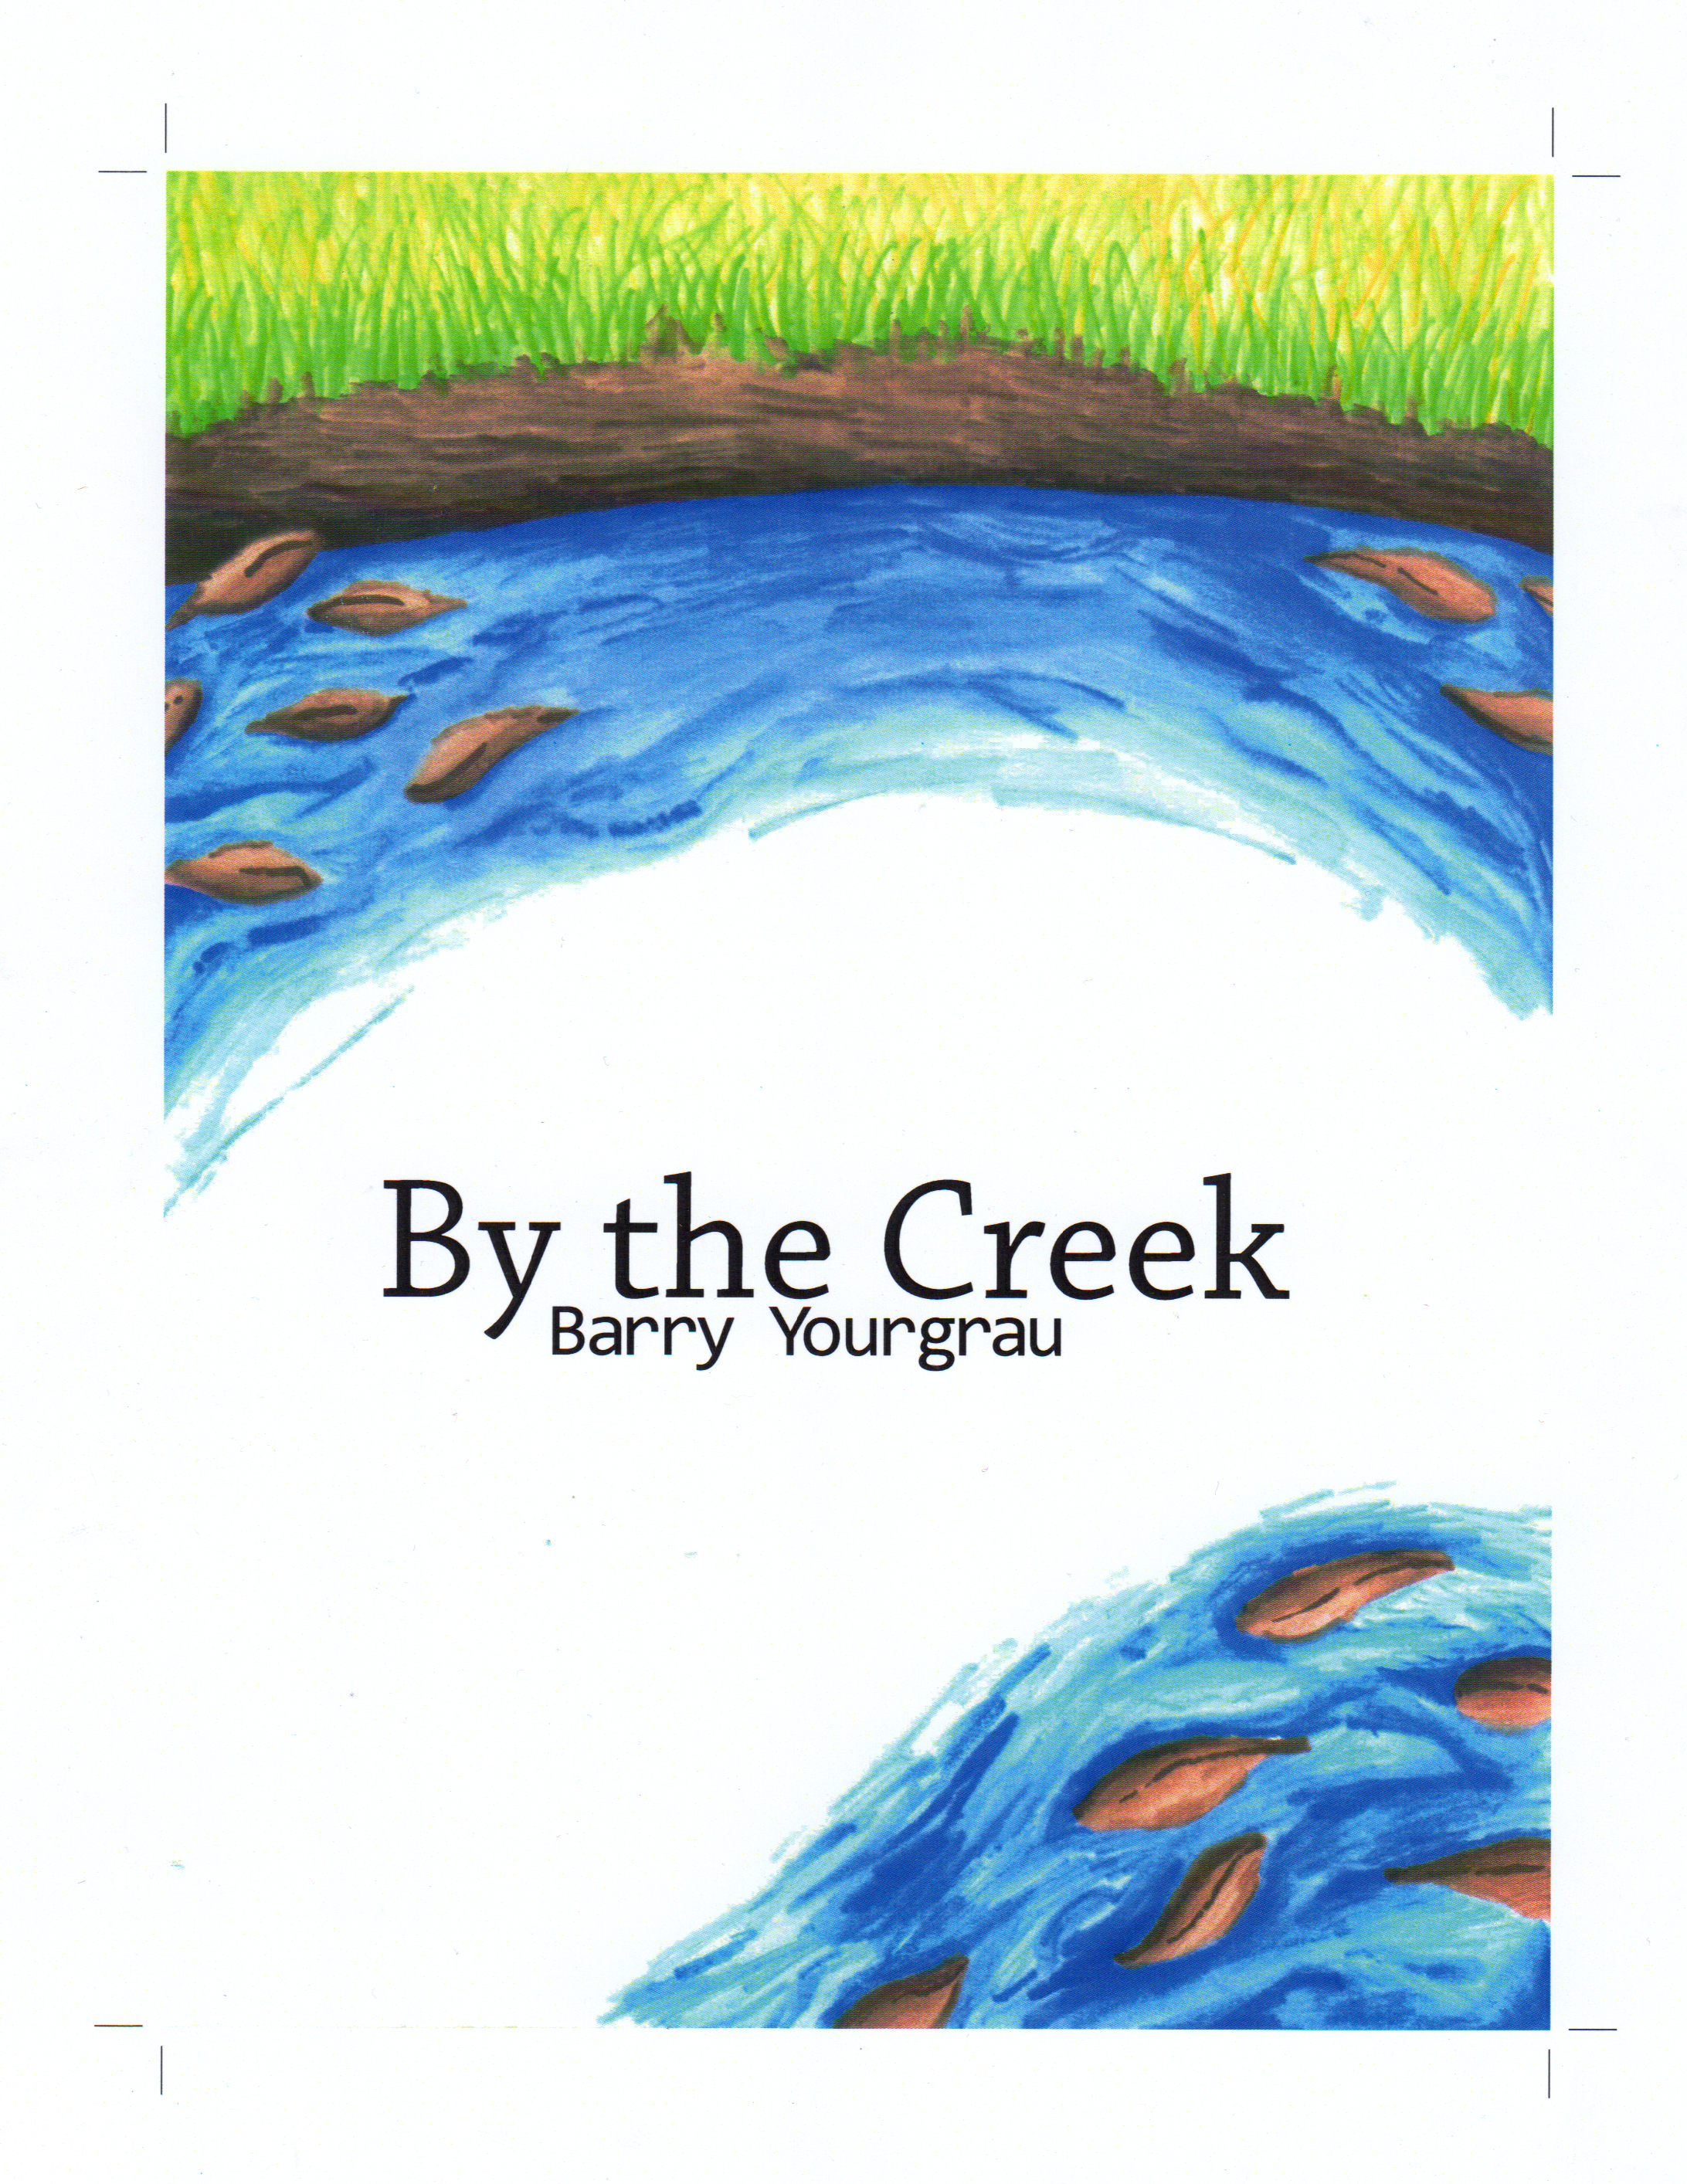 By the Creek cover 02